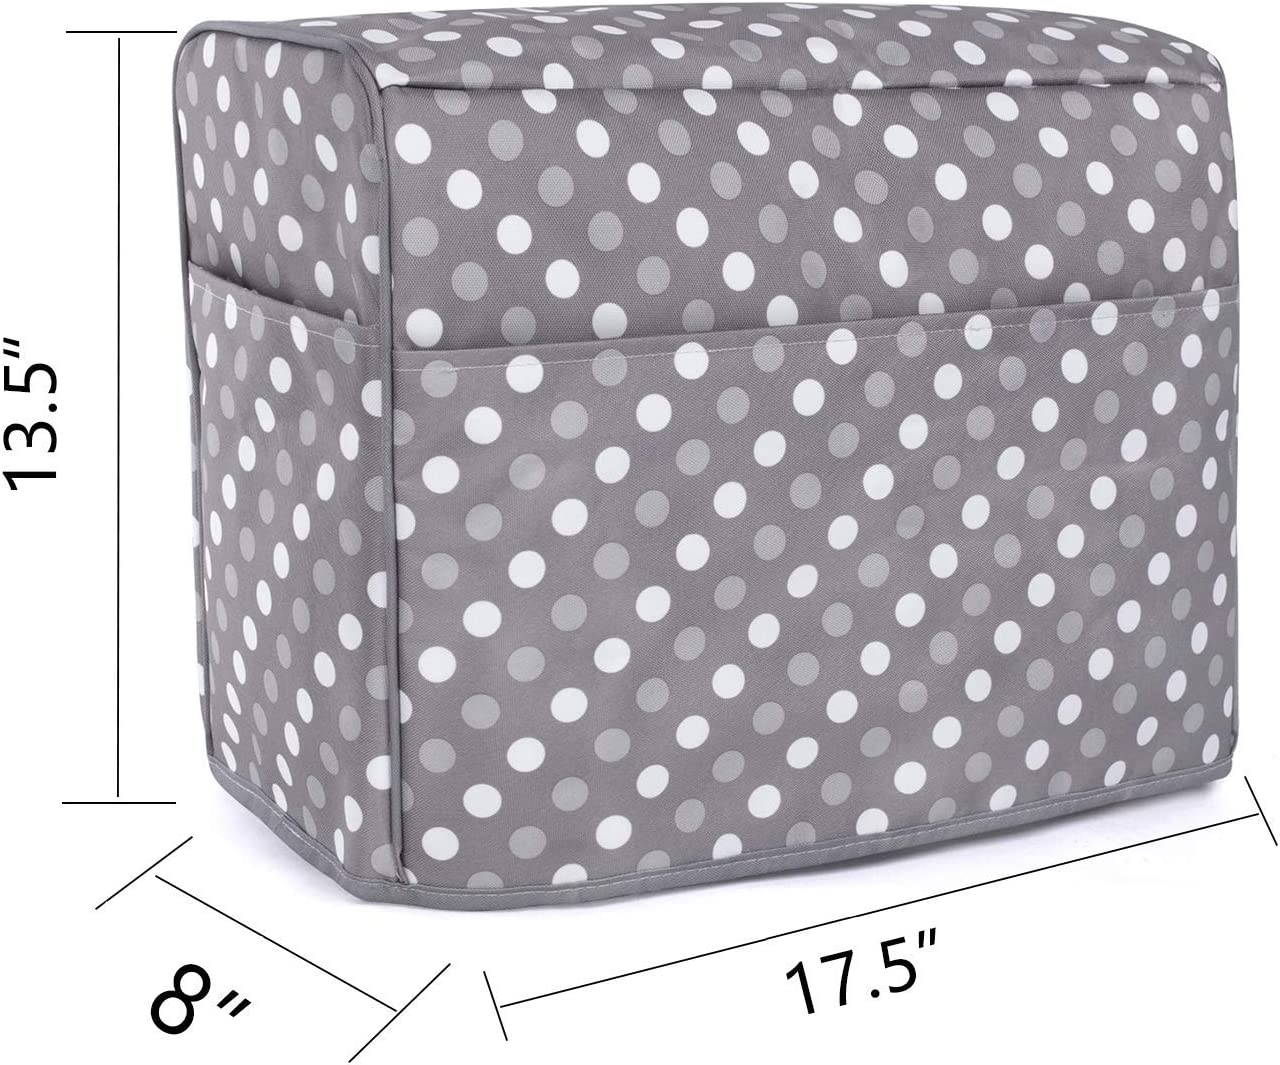 Gray Dots Luxja Dust Cover for Sewing Machine and Serger Machine Cover Compatible with Singer and Brother Serger Machine